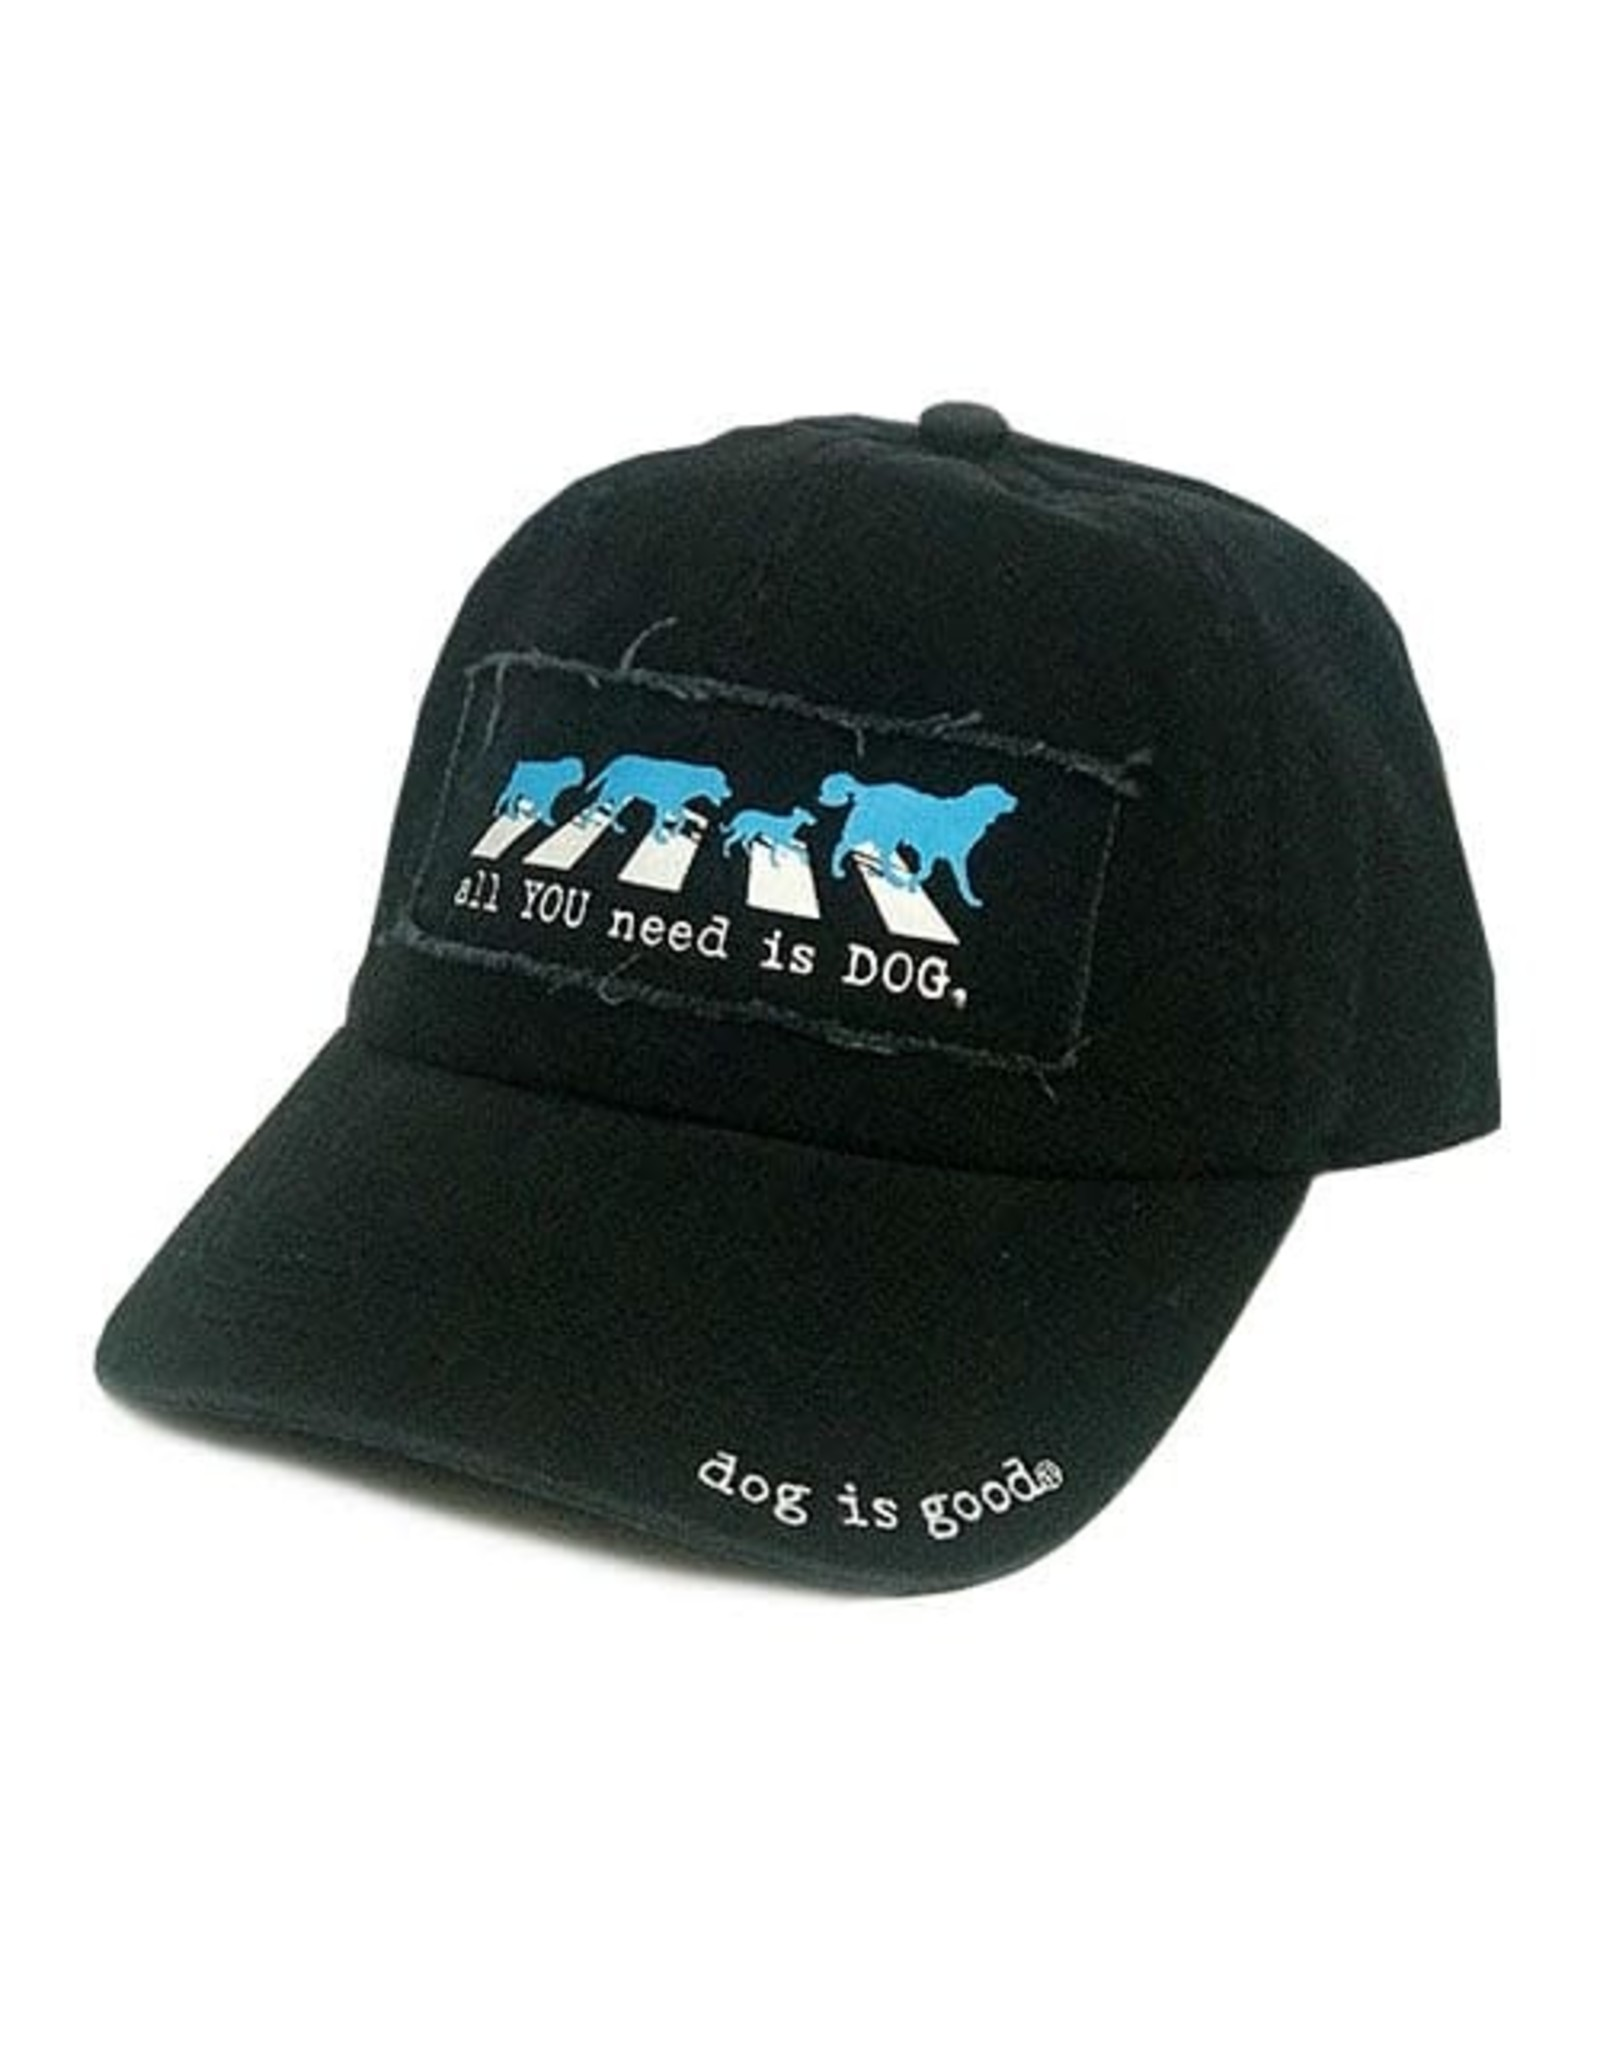 Dog Is Good Cap:  All You Need is Dog